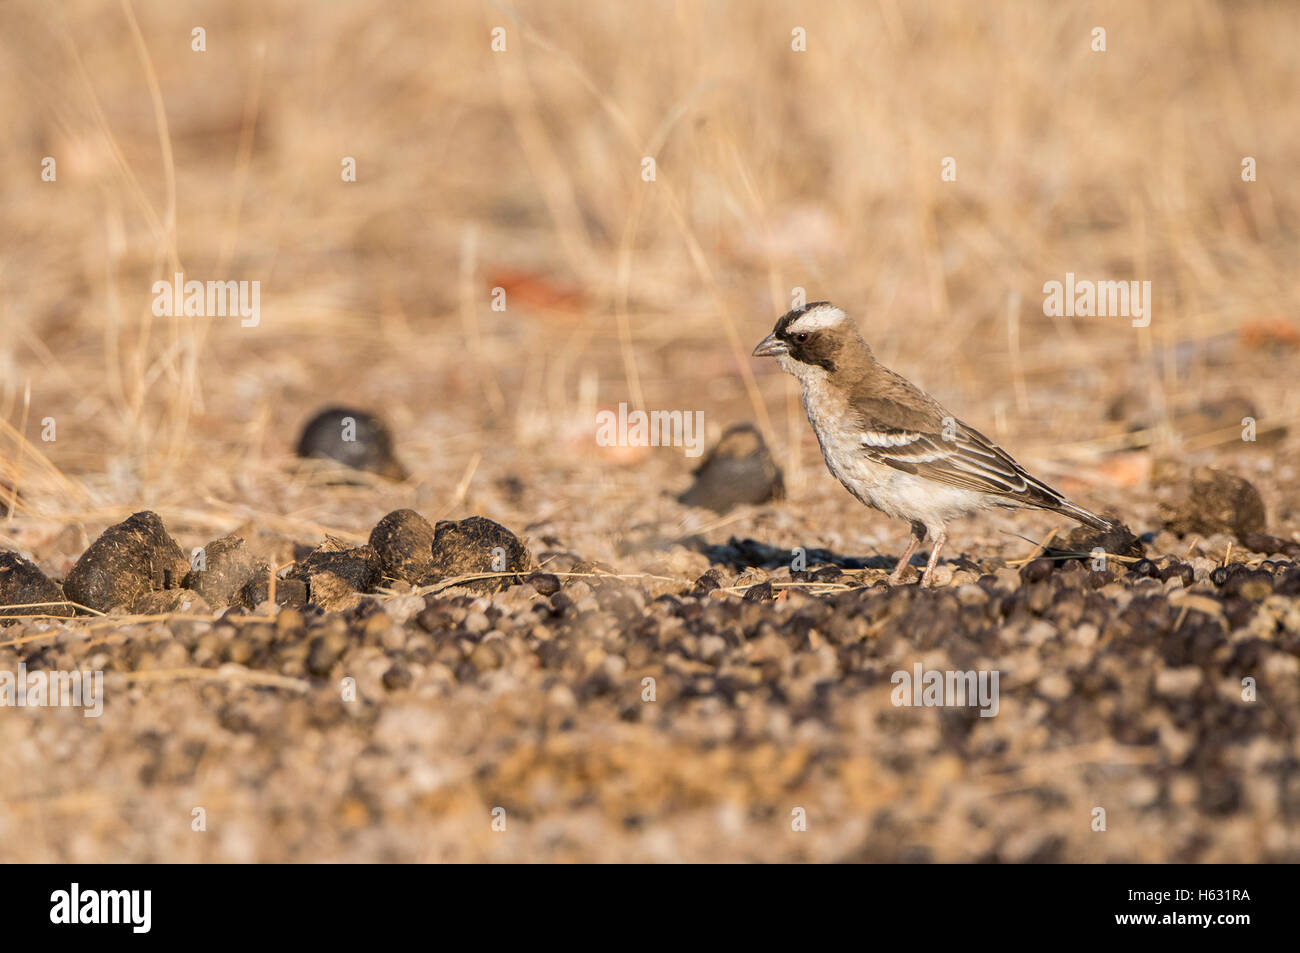 White-browed Sparrow Weaver (Plocepasser mahali) on the Ground in South Africa - Stock Image